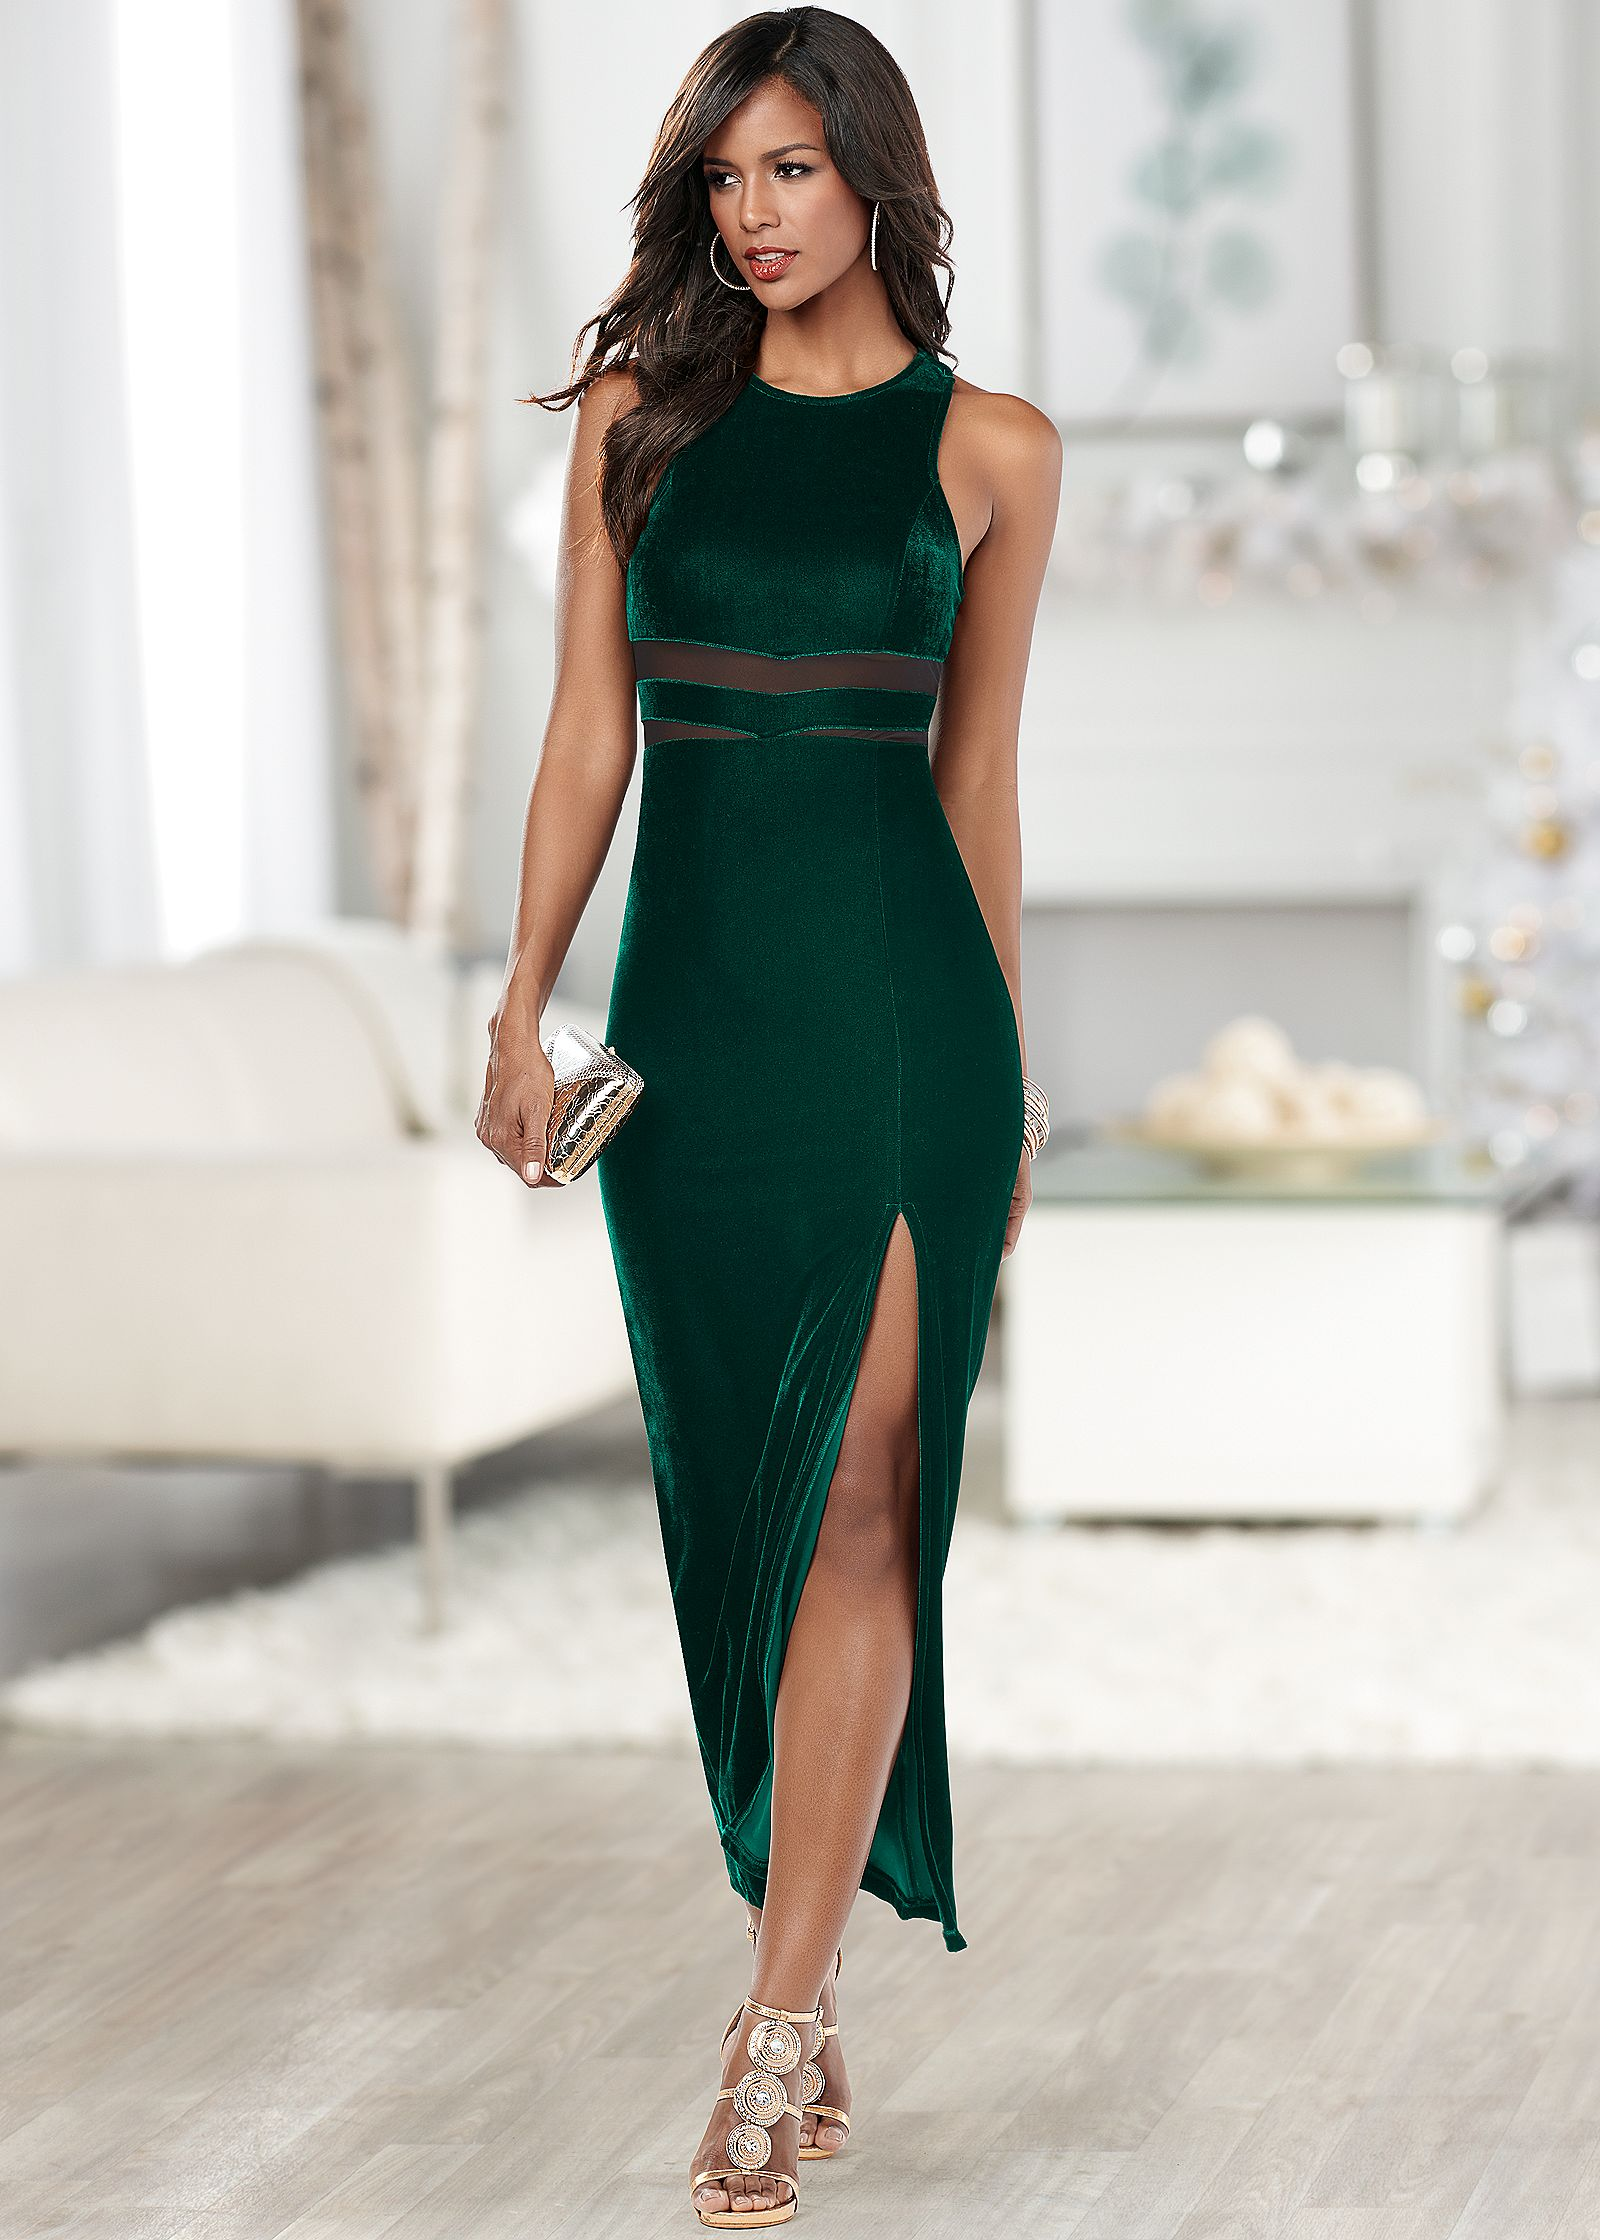 Glossaries style long dress